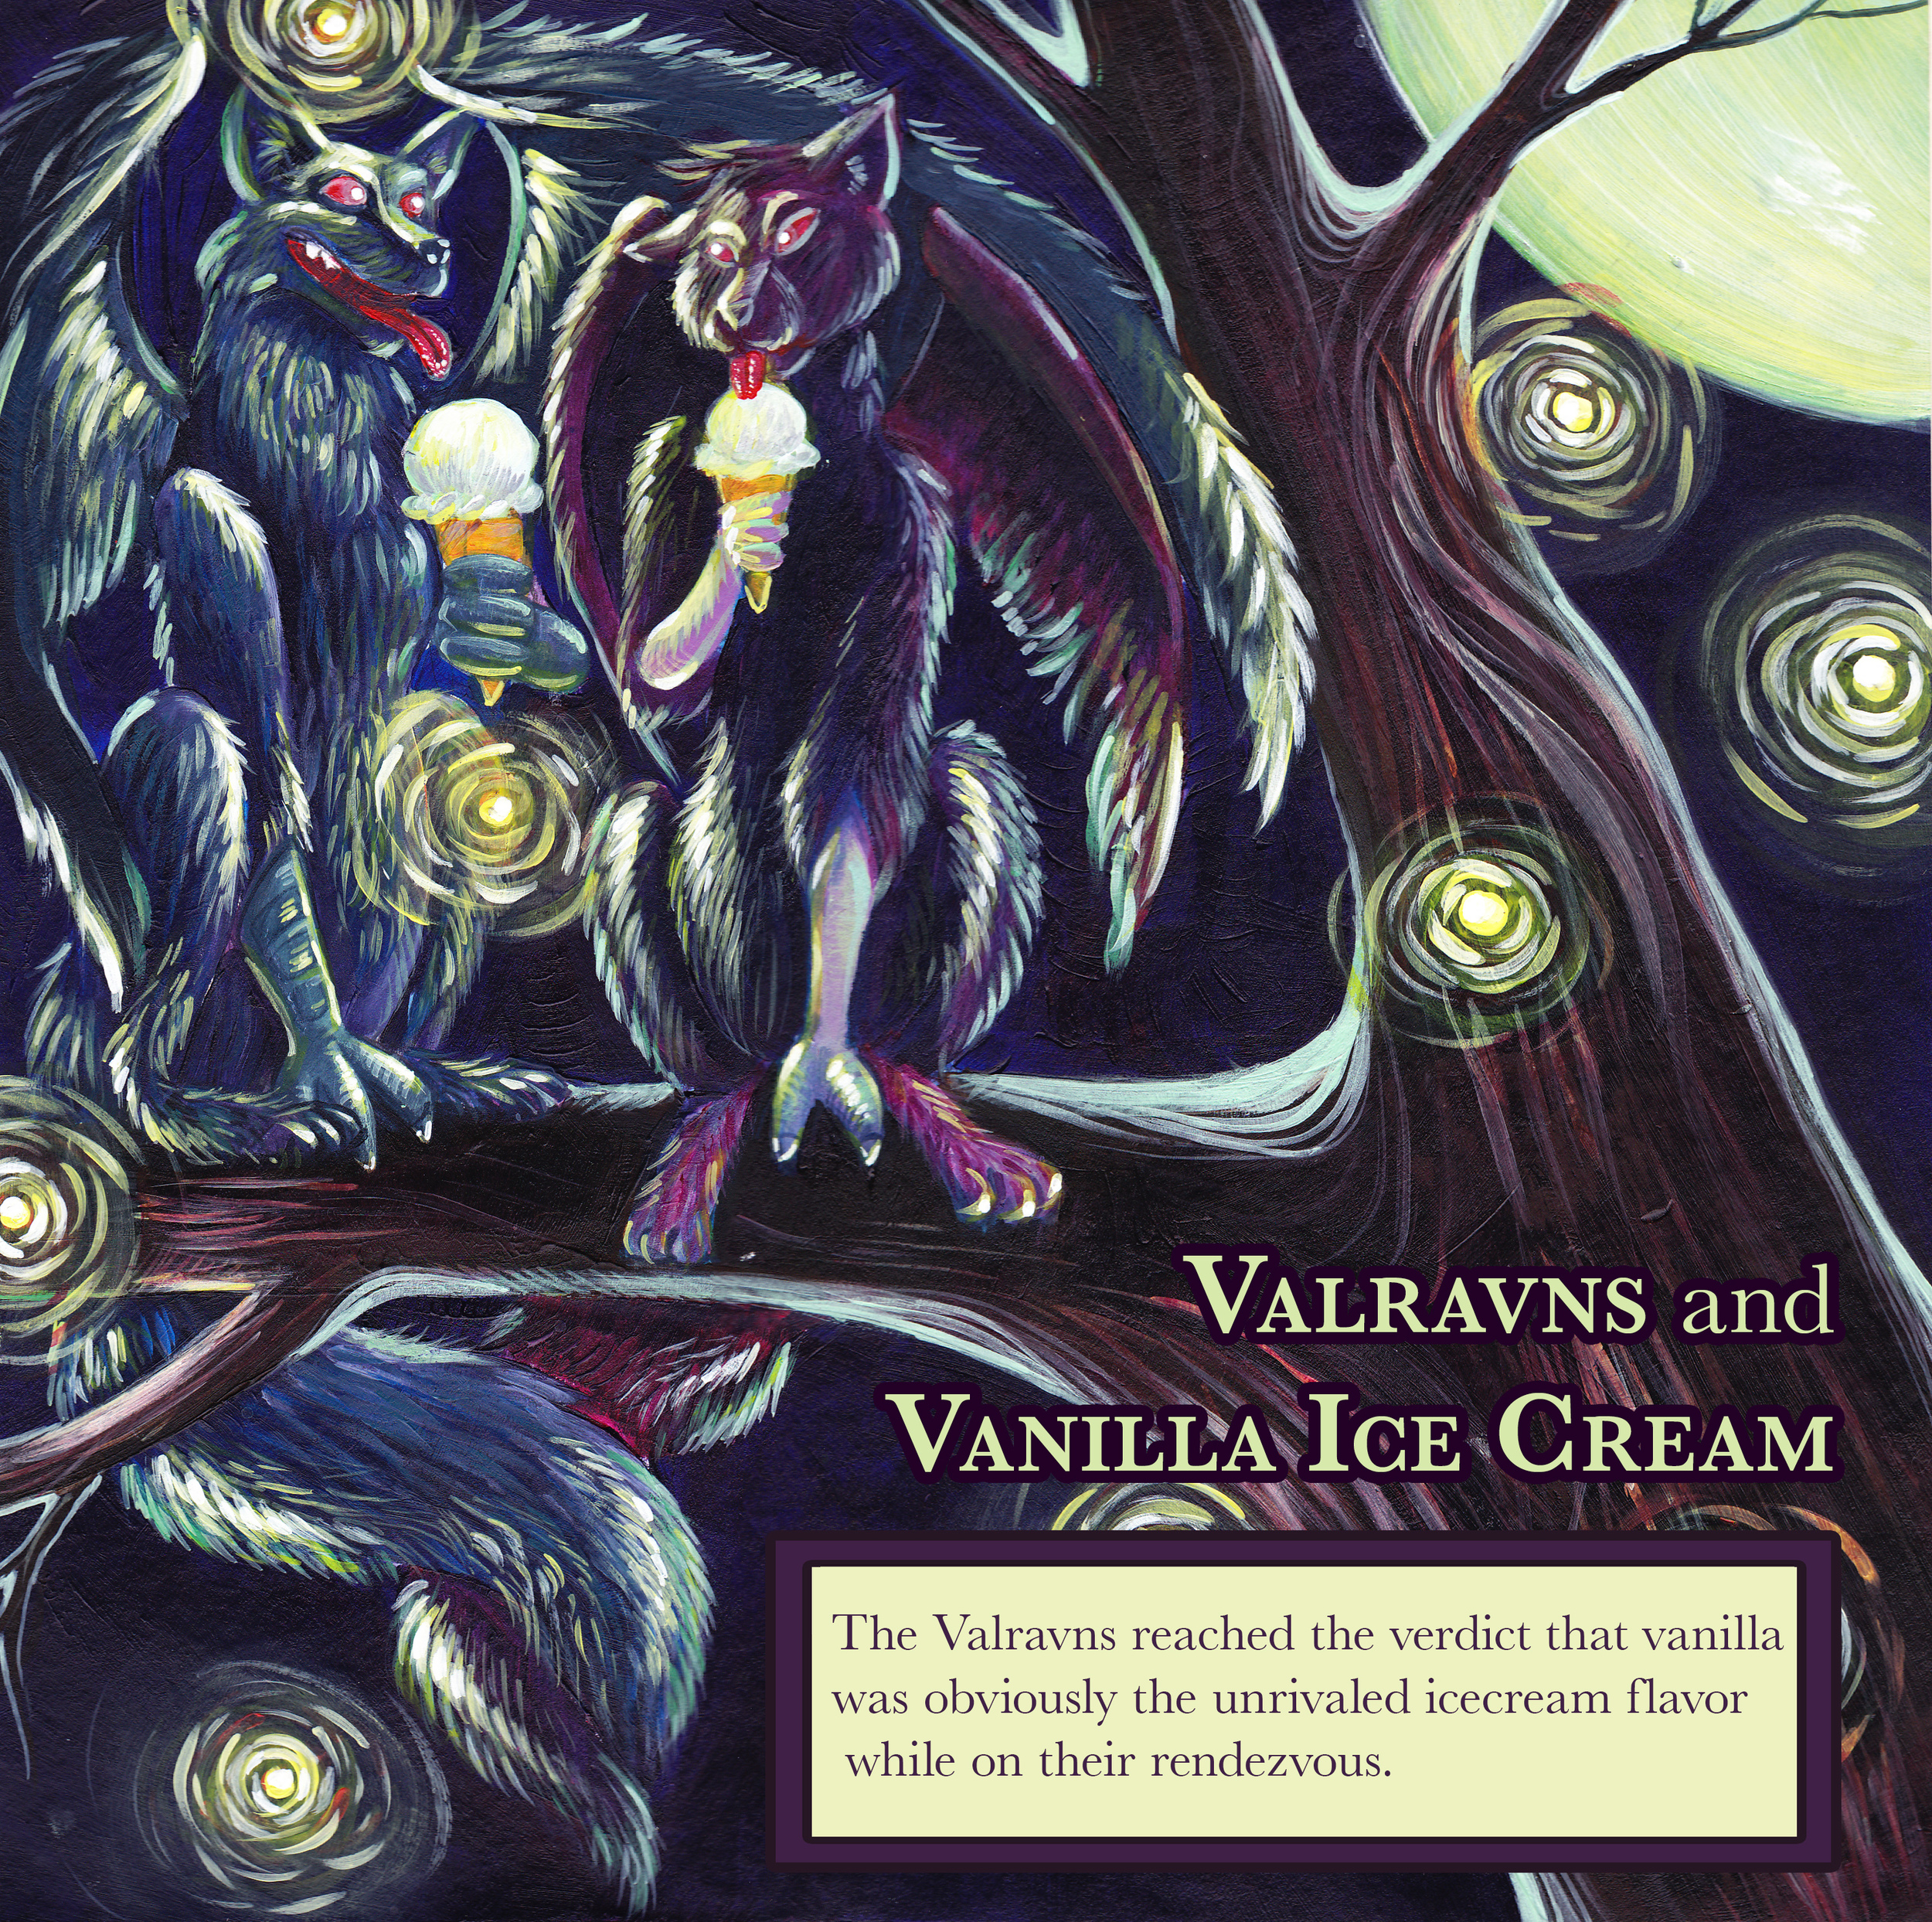 V is for Valraven